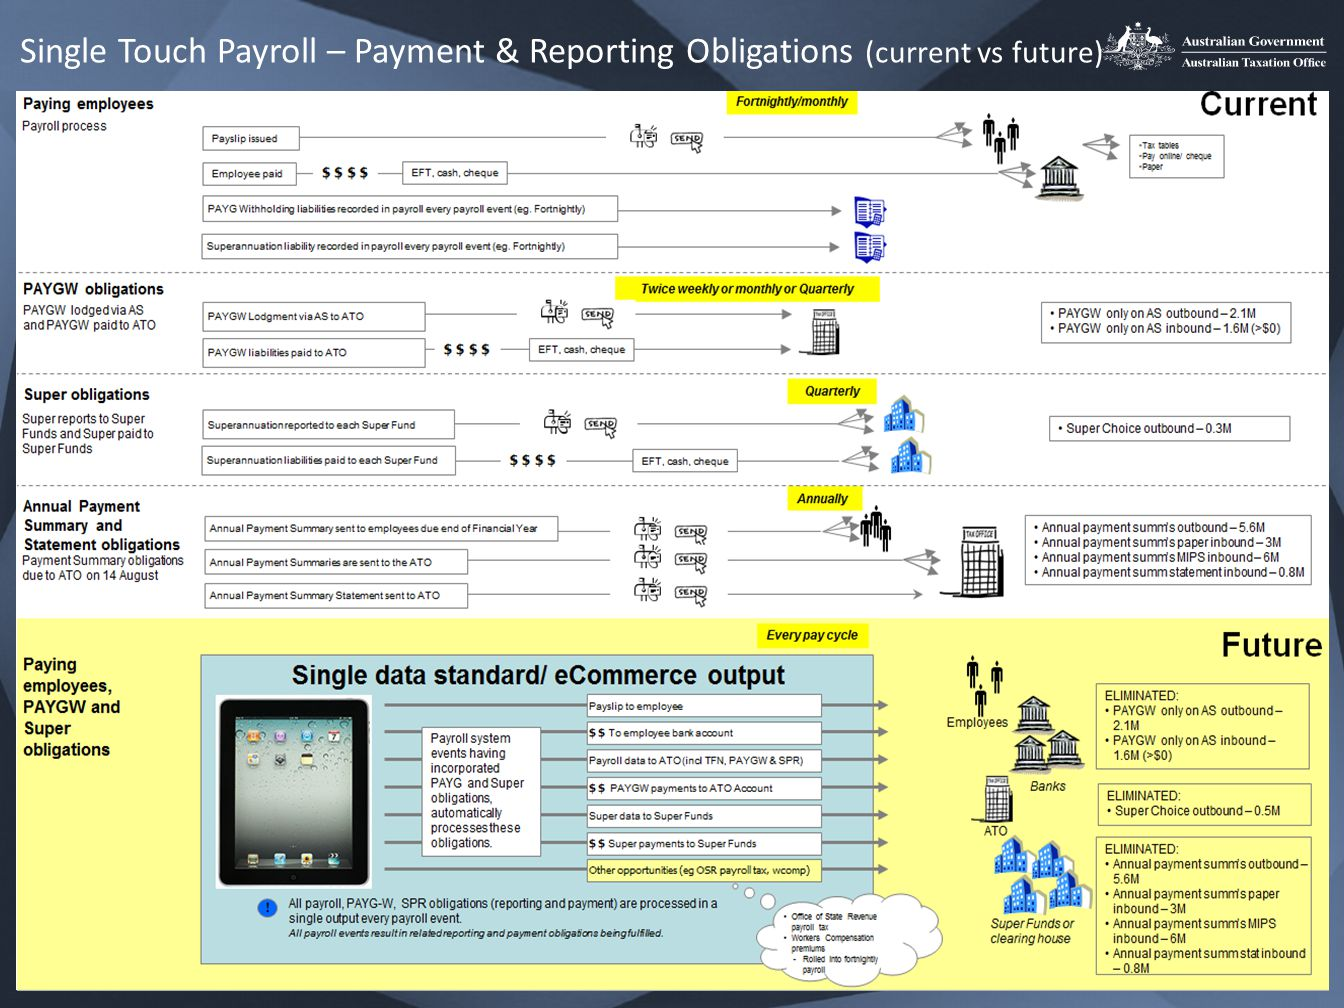 4 Single Touch Payroll – Payment & Reporting Obligations (current vs future)